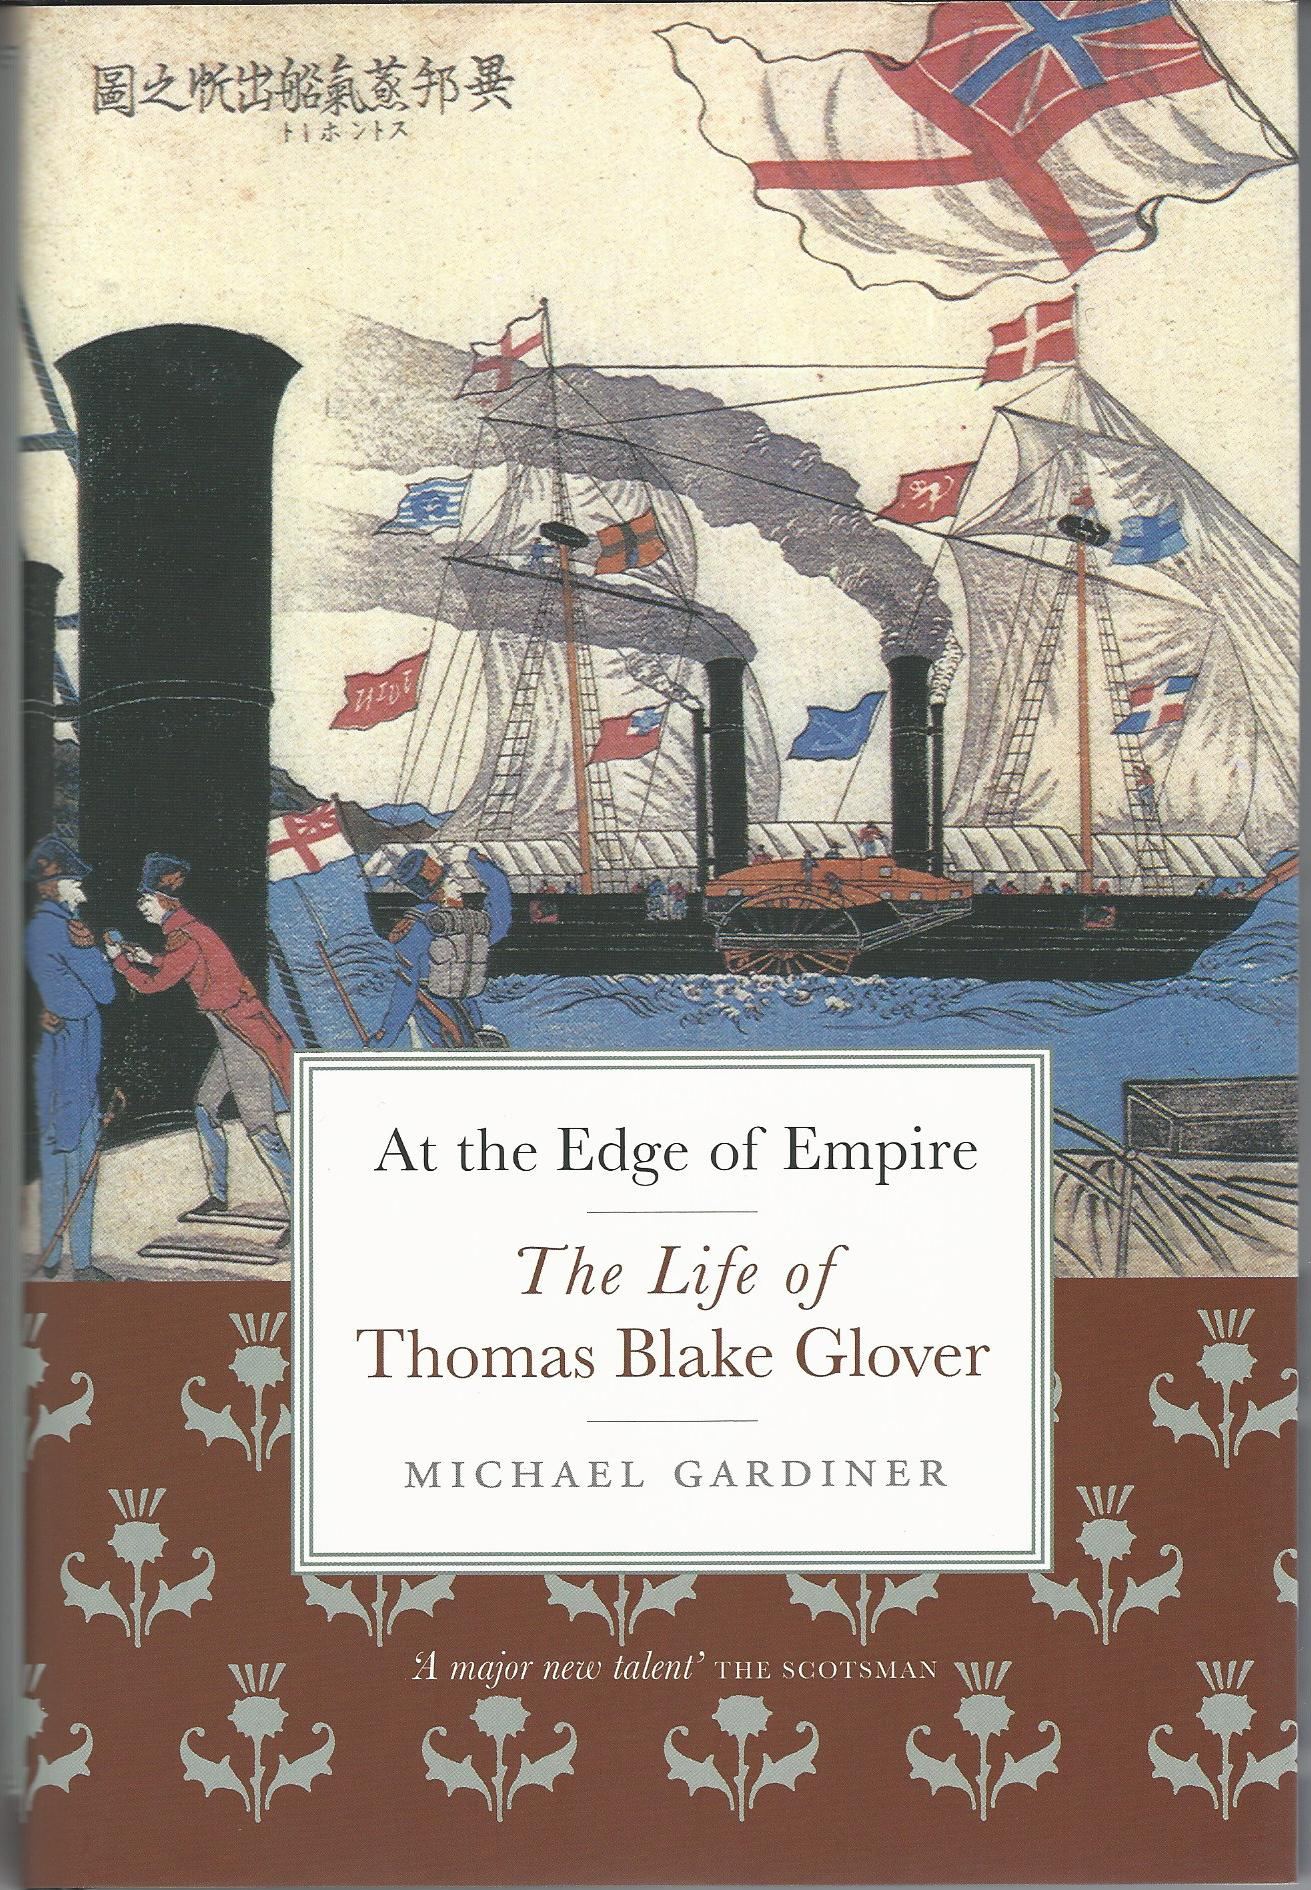 Image for At the Edge of Empire: The Life of Thomas Blake Glover.